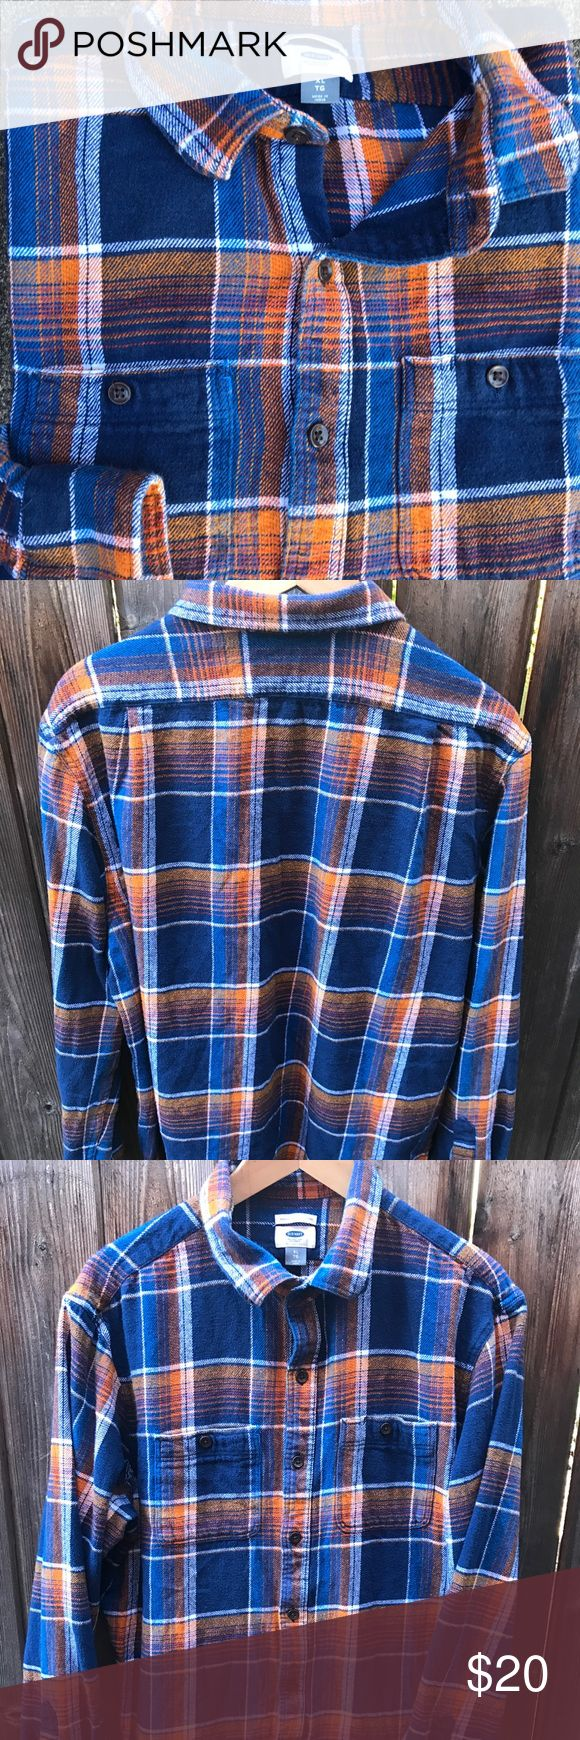 Old Navy Plaid Button Down Blue/orange plaid button down. 100% cotton. Worn for one season. In great condition. Old Navy Shirts Casual Button Down Shirts